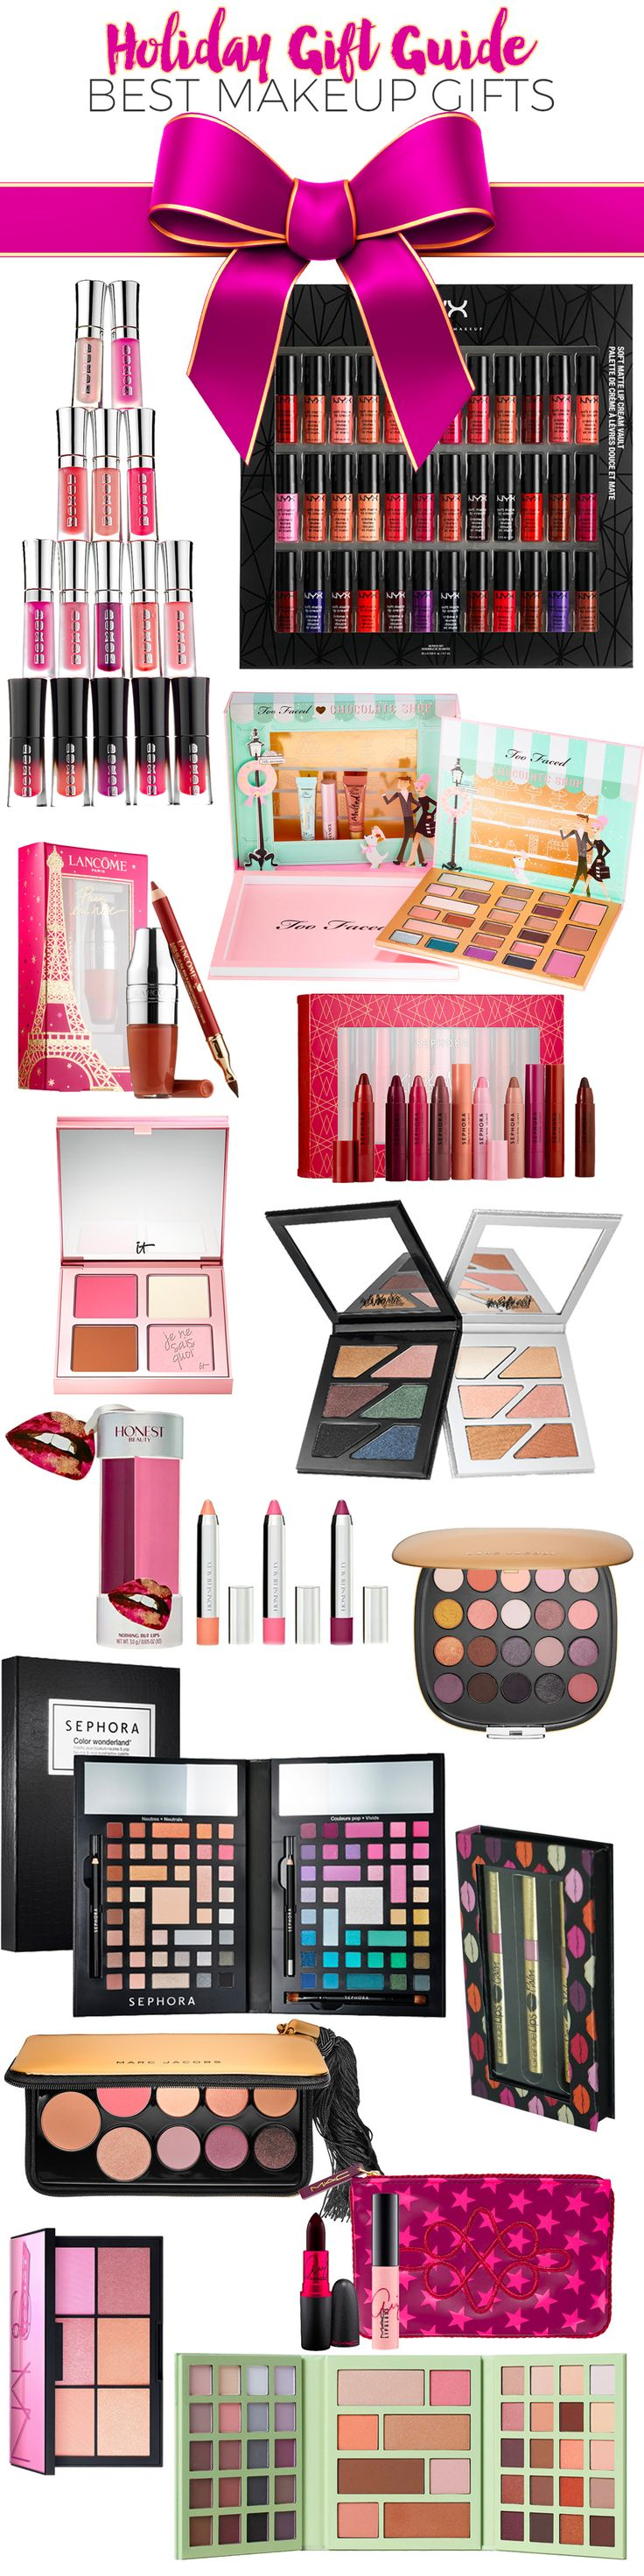 Holiday Gift Guide 2016: Best Makeup Gifts